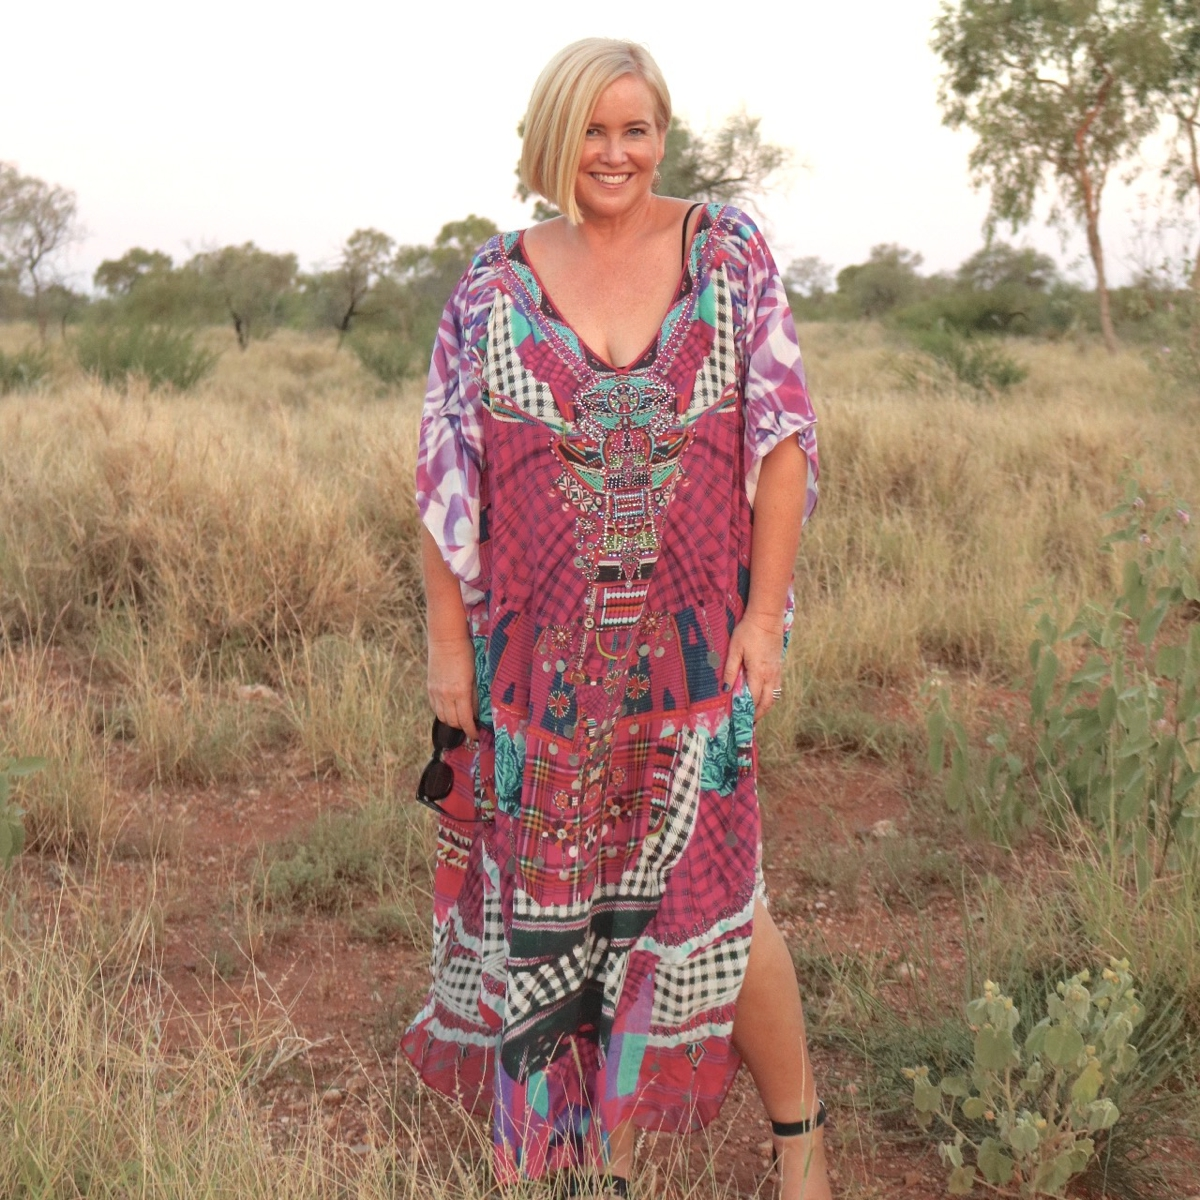 Camilla kaftan from Zambezee Boutique | Location: Barkly Homestead, Northern Territory Australia